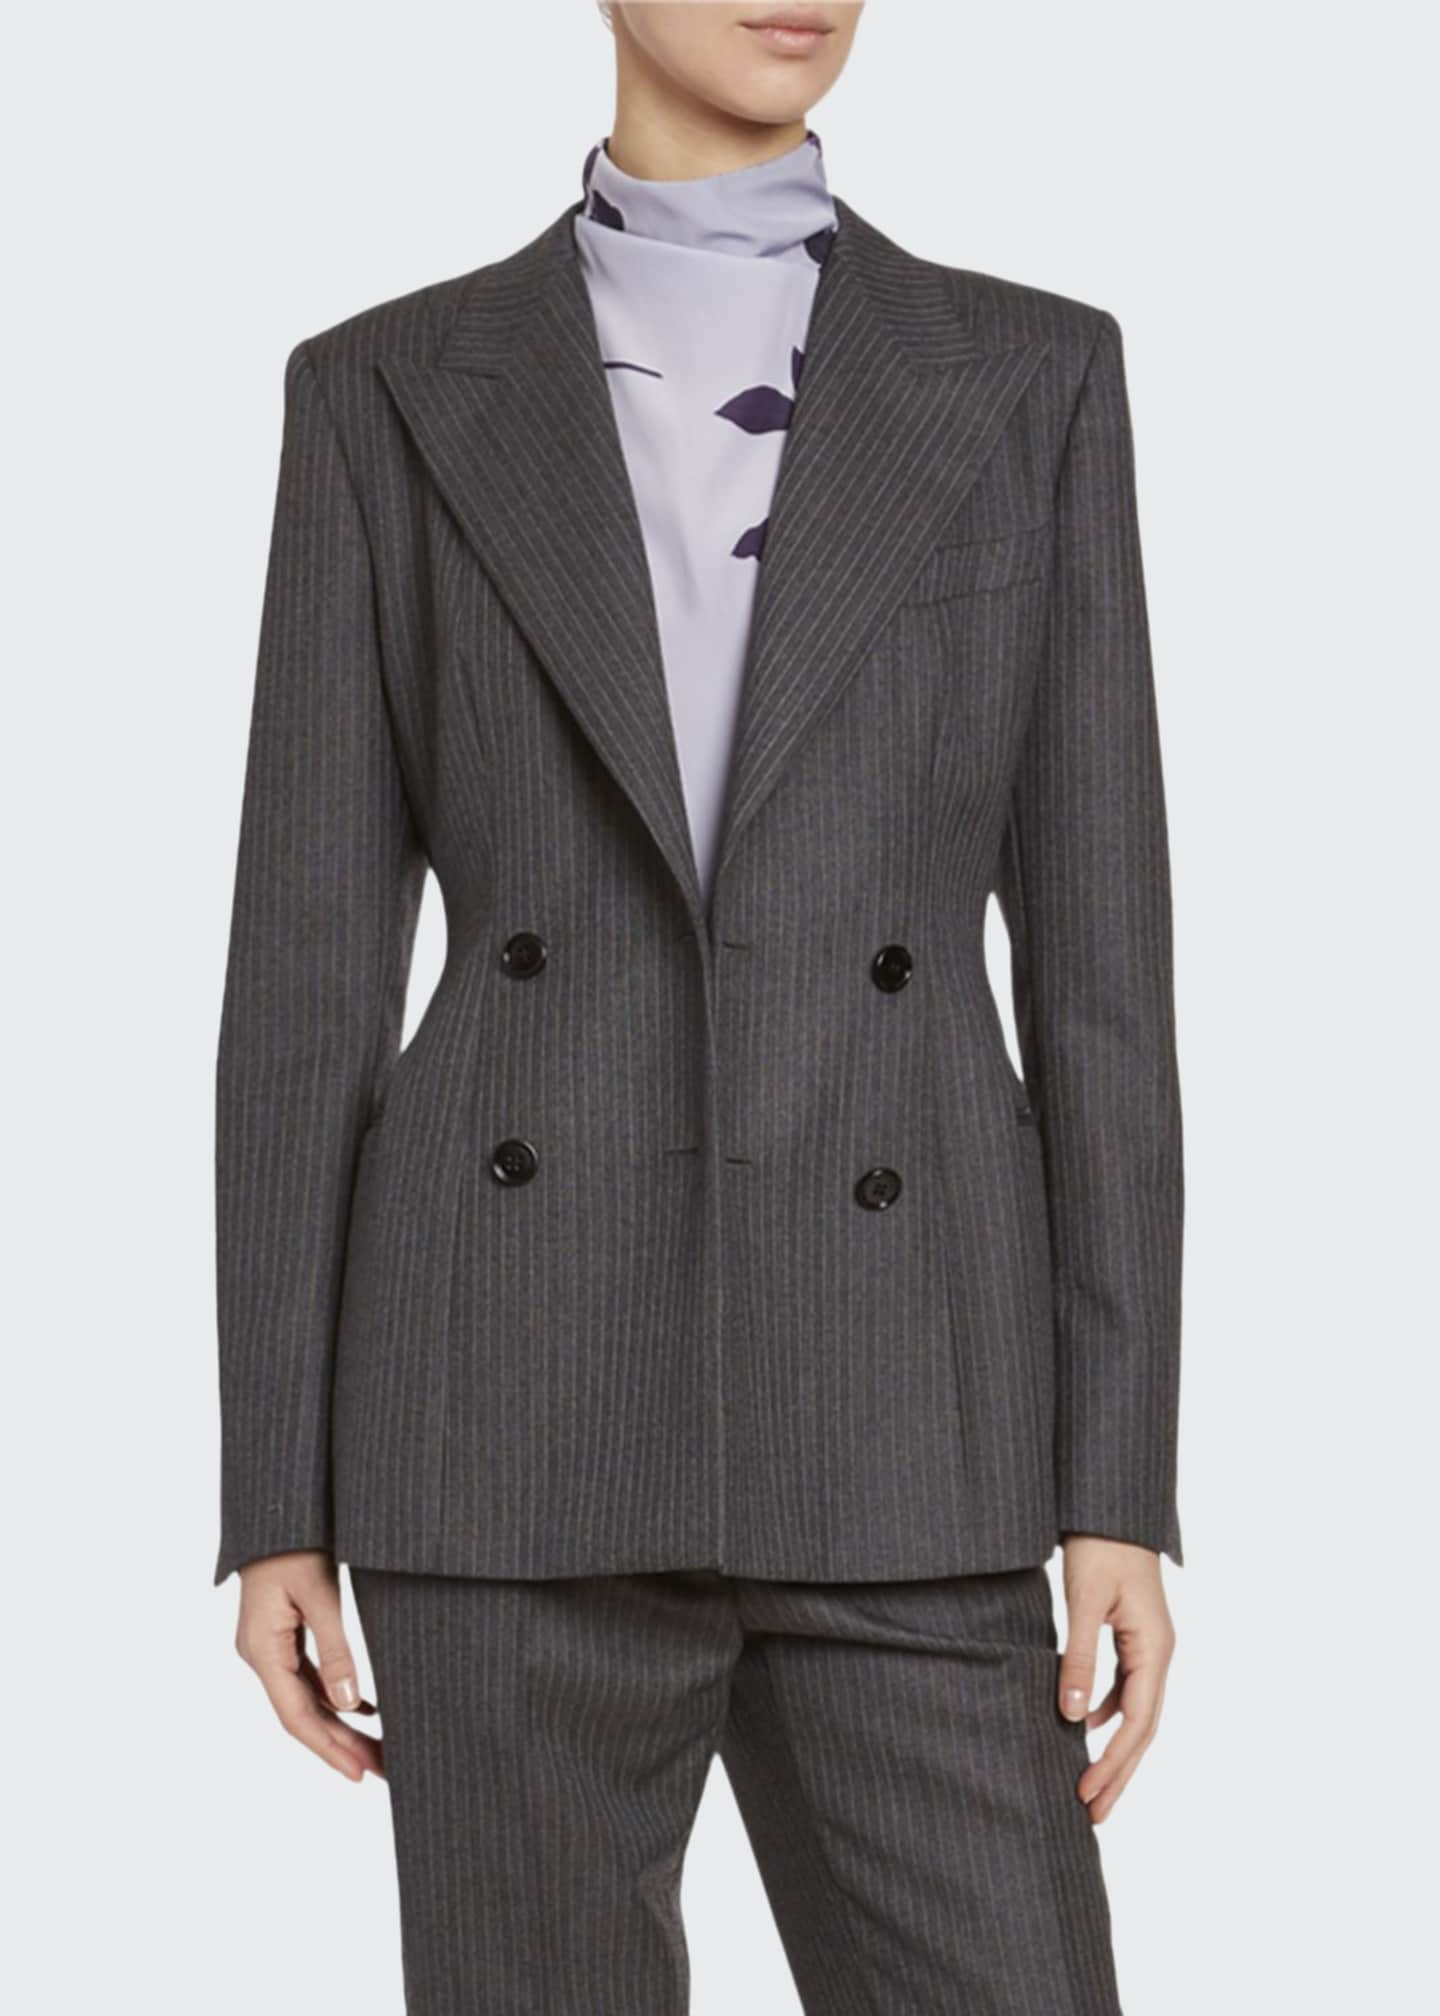 Dries Van Noten Pinstriped Wool Blazer